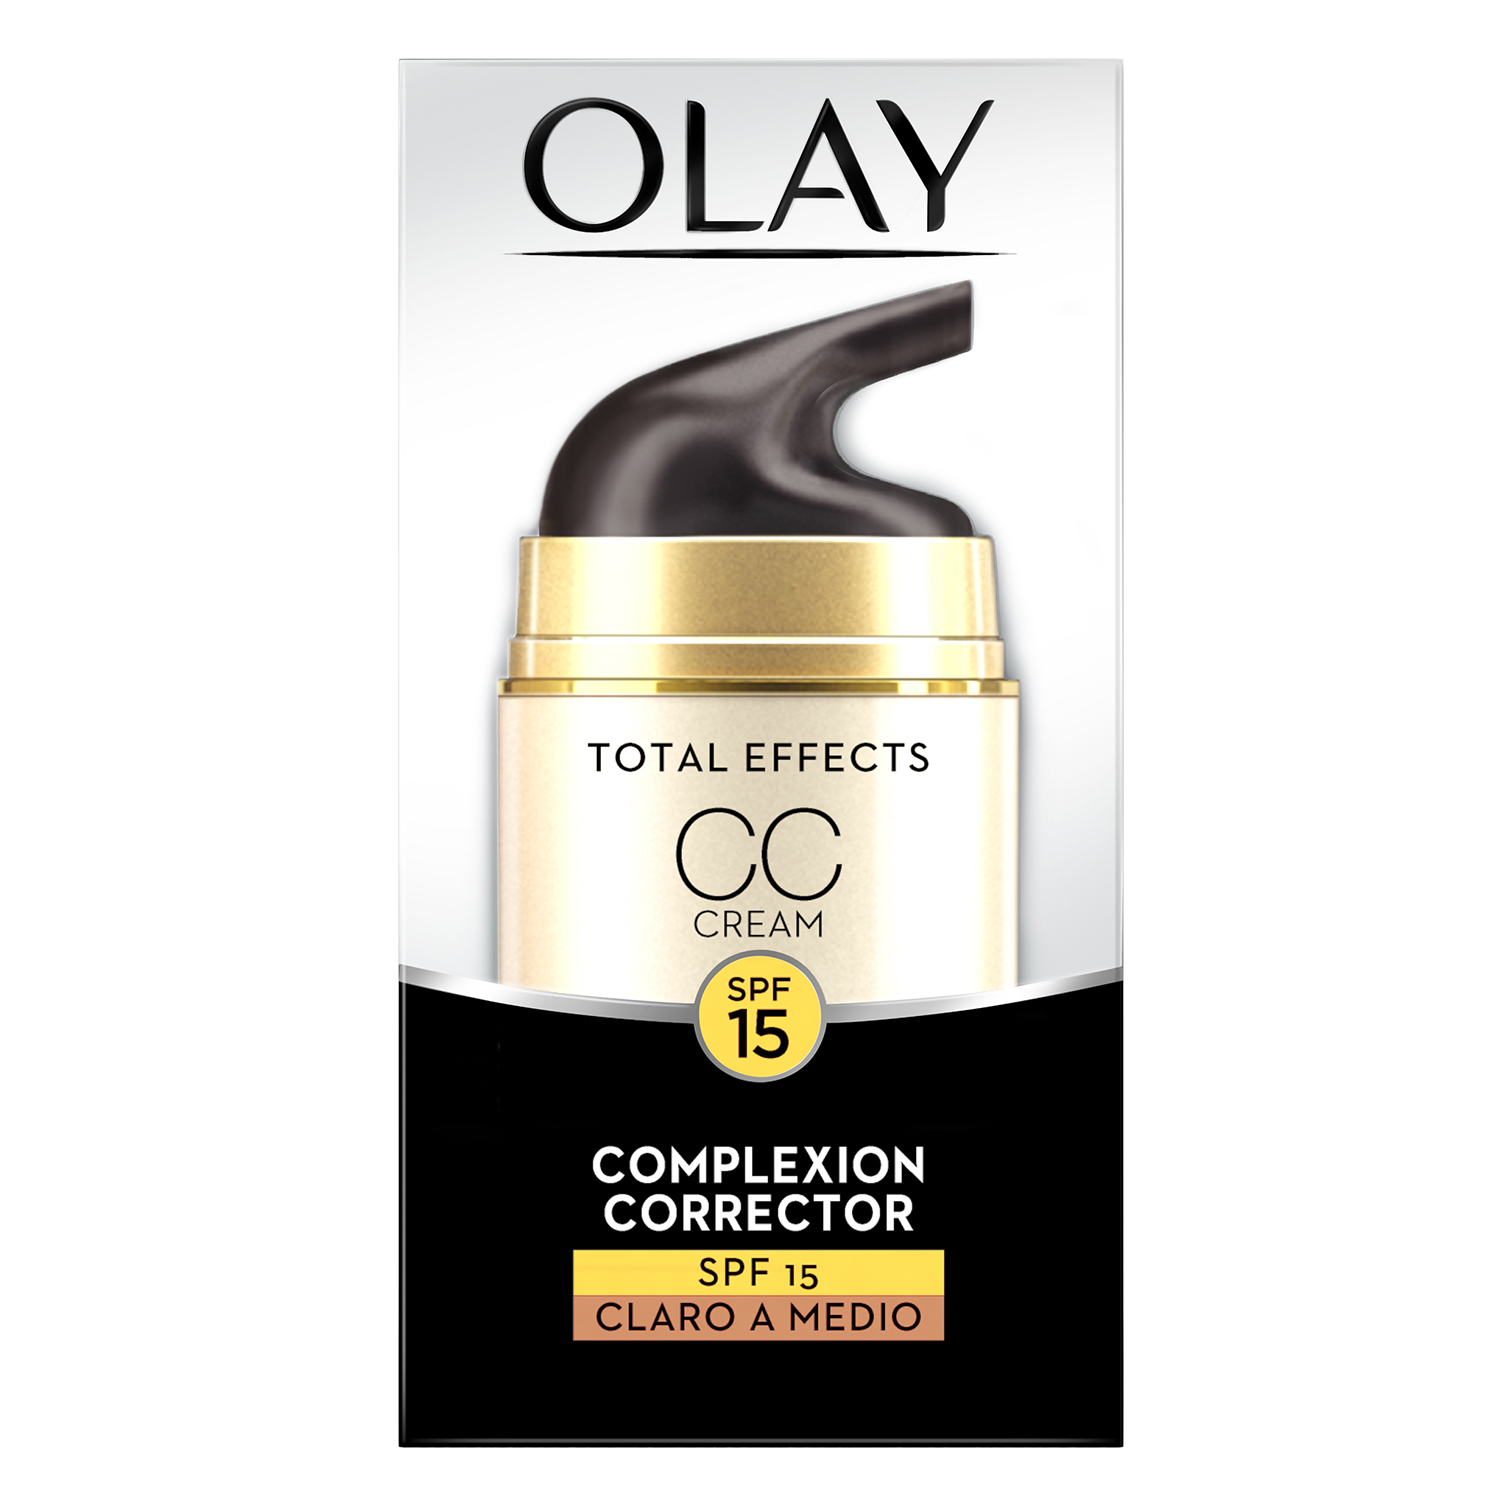 Crema CC correctora Total Effects SPF15 claro a medio Olay 50 ml.